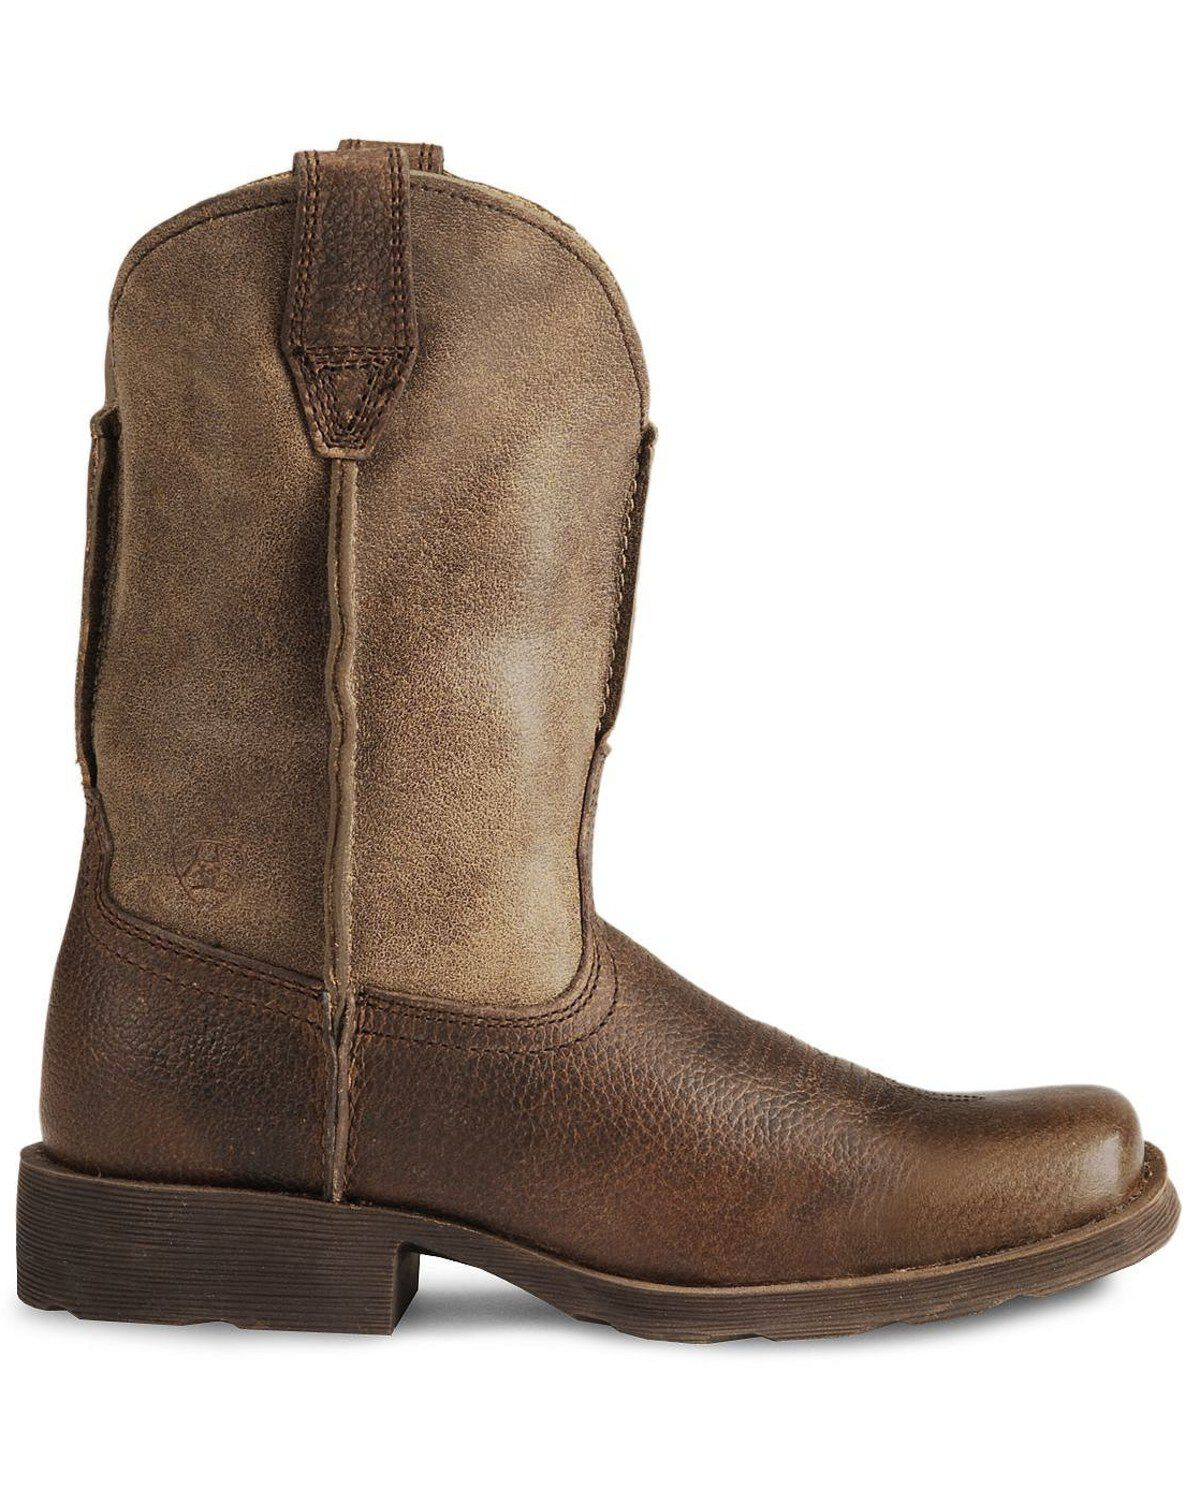 CHILDREN/'S//YOUTH ARIAT BROWN EARTH SQUARE TOE RAMBLER WESTERN BOOTS 10007602